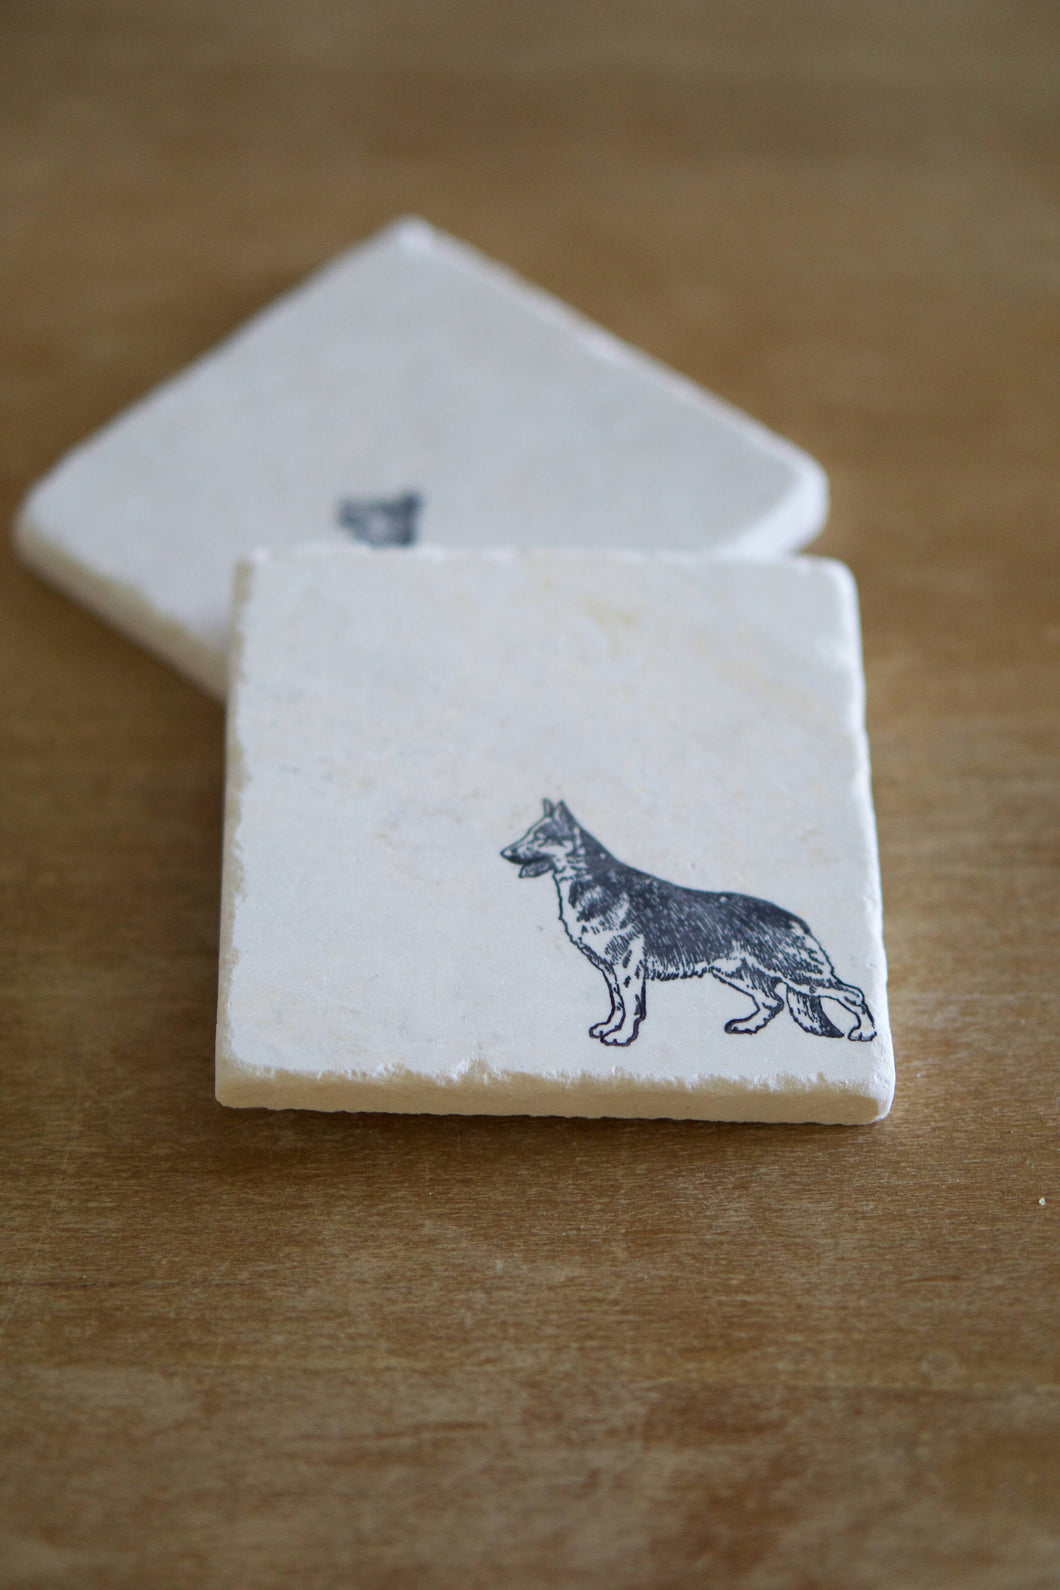 German Shepherd Dog Marble Coasters - Lace, Grace & Peonies